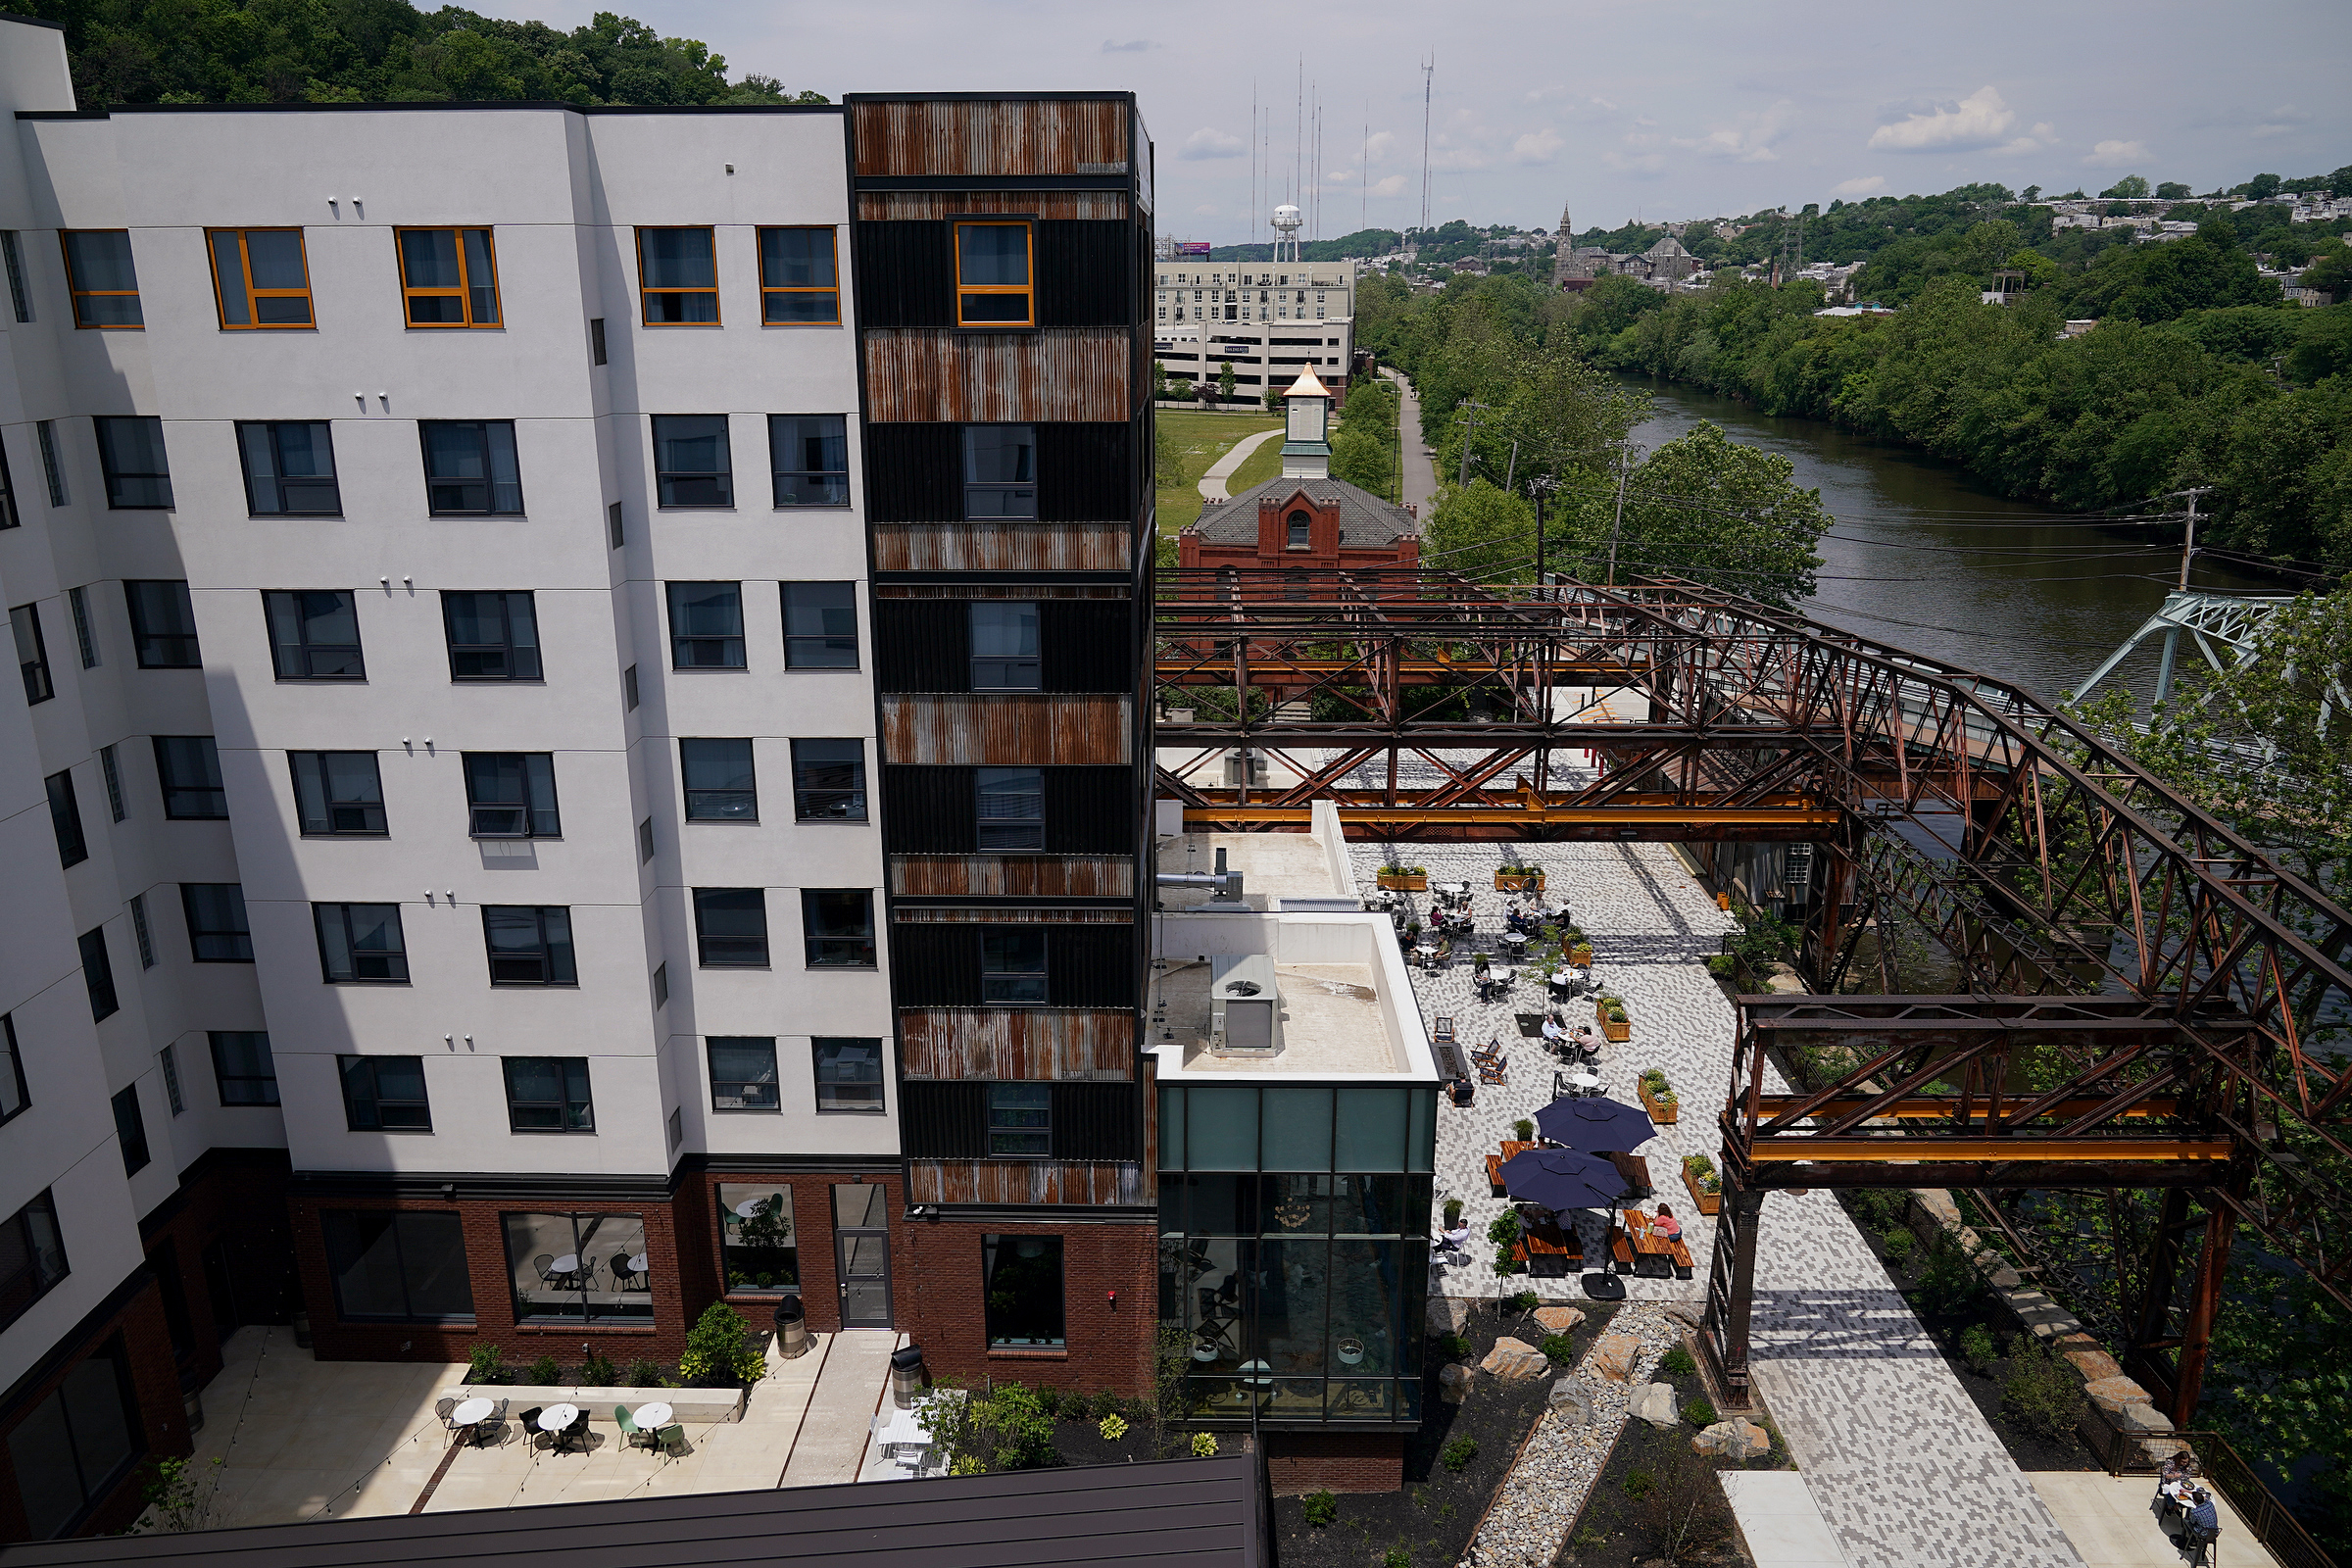 A Residence Inn hotel (left) and outdoor dining area for The Landing Kitchen are pictured at the Ironworks at Pencoyd Landing in Bala Cynwyd, Pa., on Wednesday, June 2, 2021. The new development, which opened earlier this year with a restaurant and hotel, is located on the site of the former Pencoyd Iron Works along the Schuylkill.